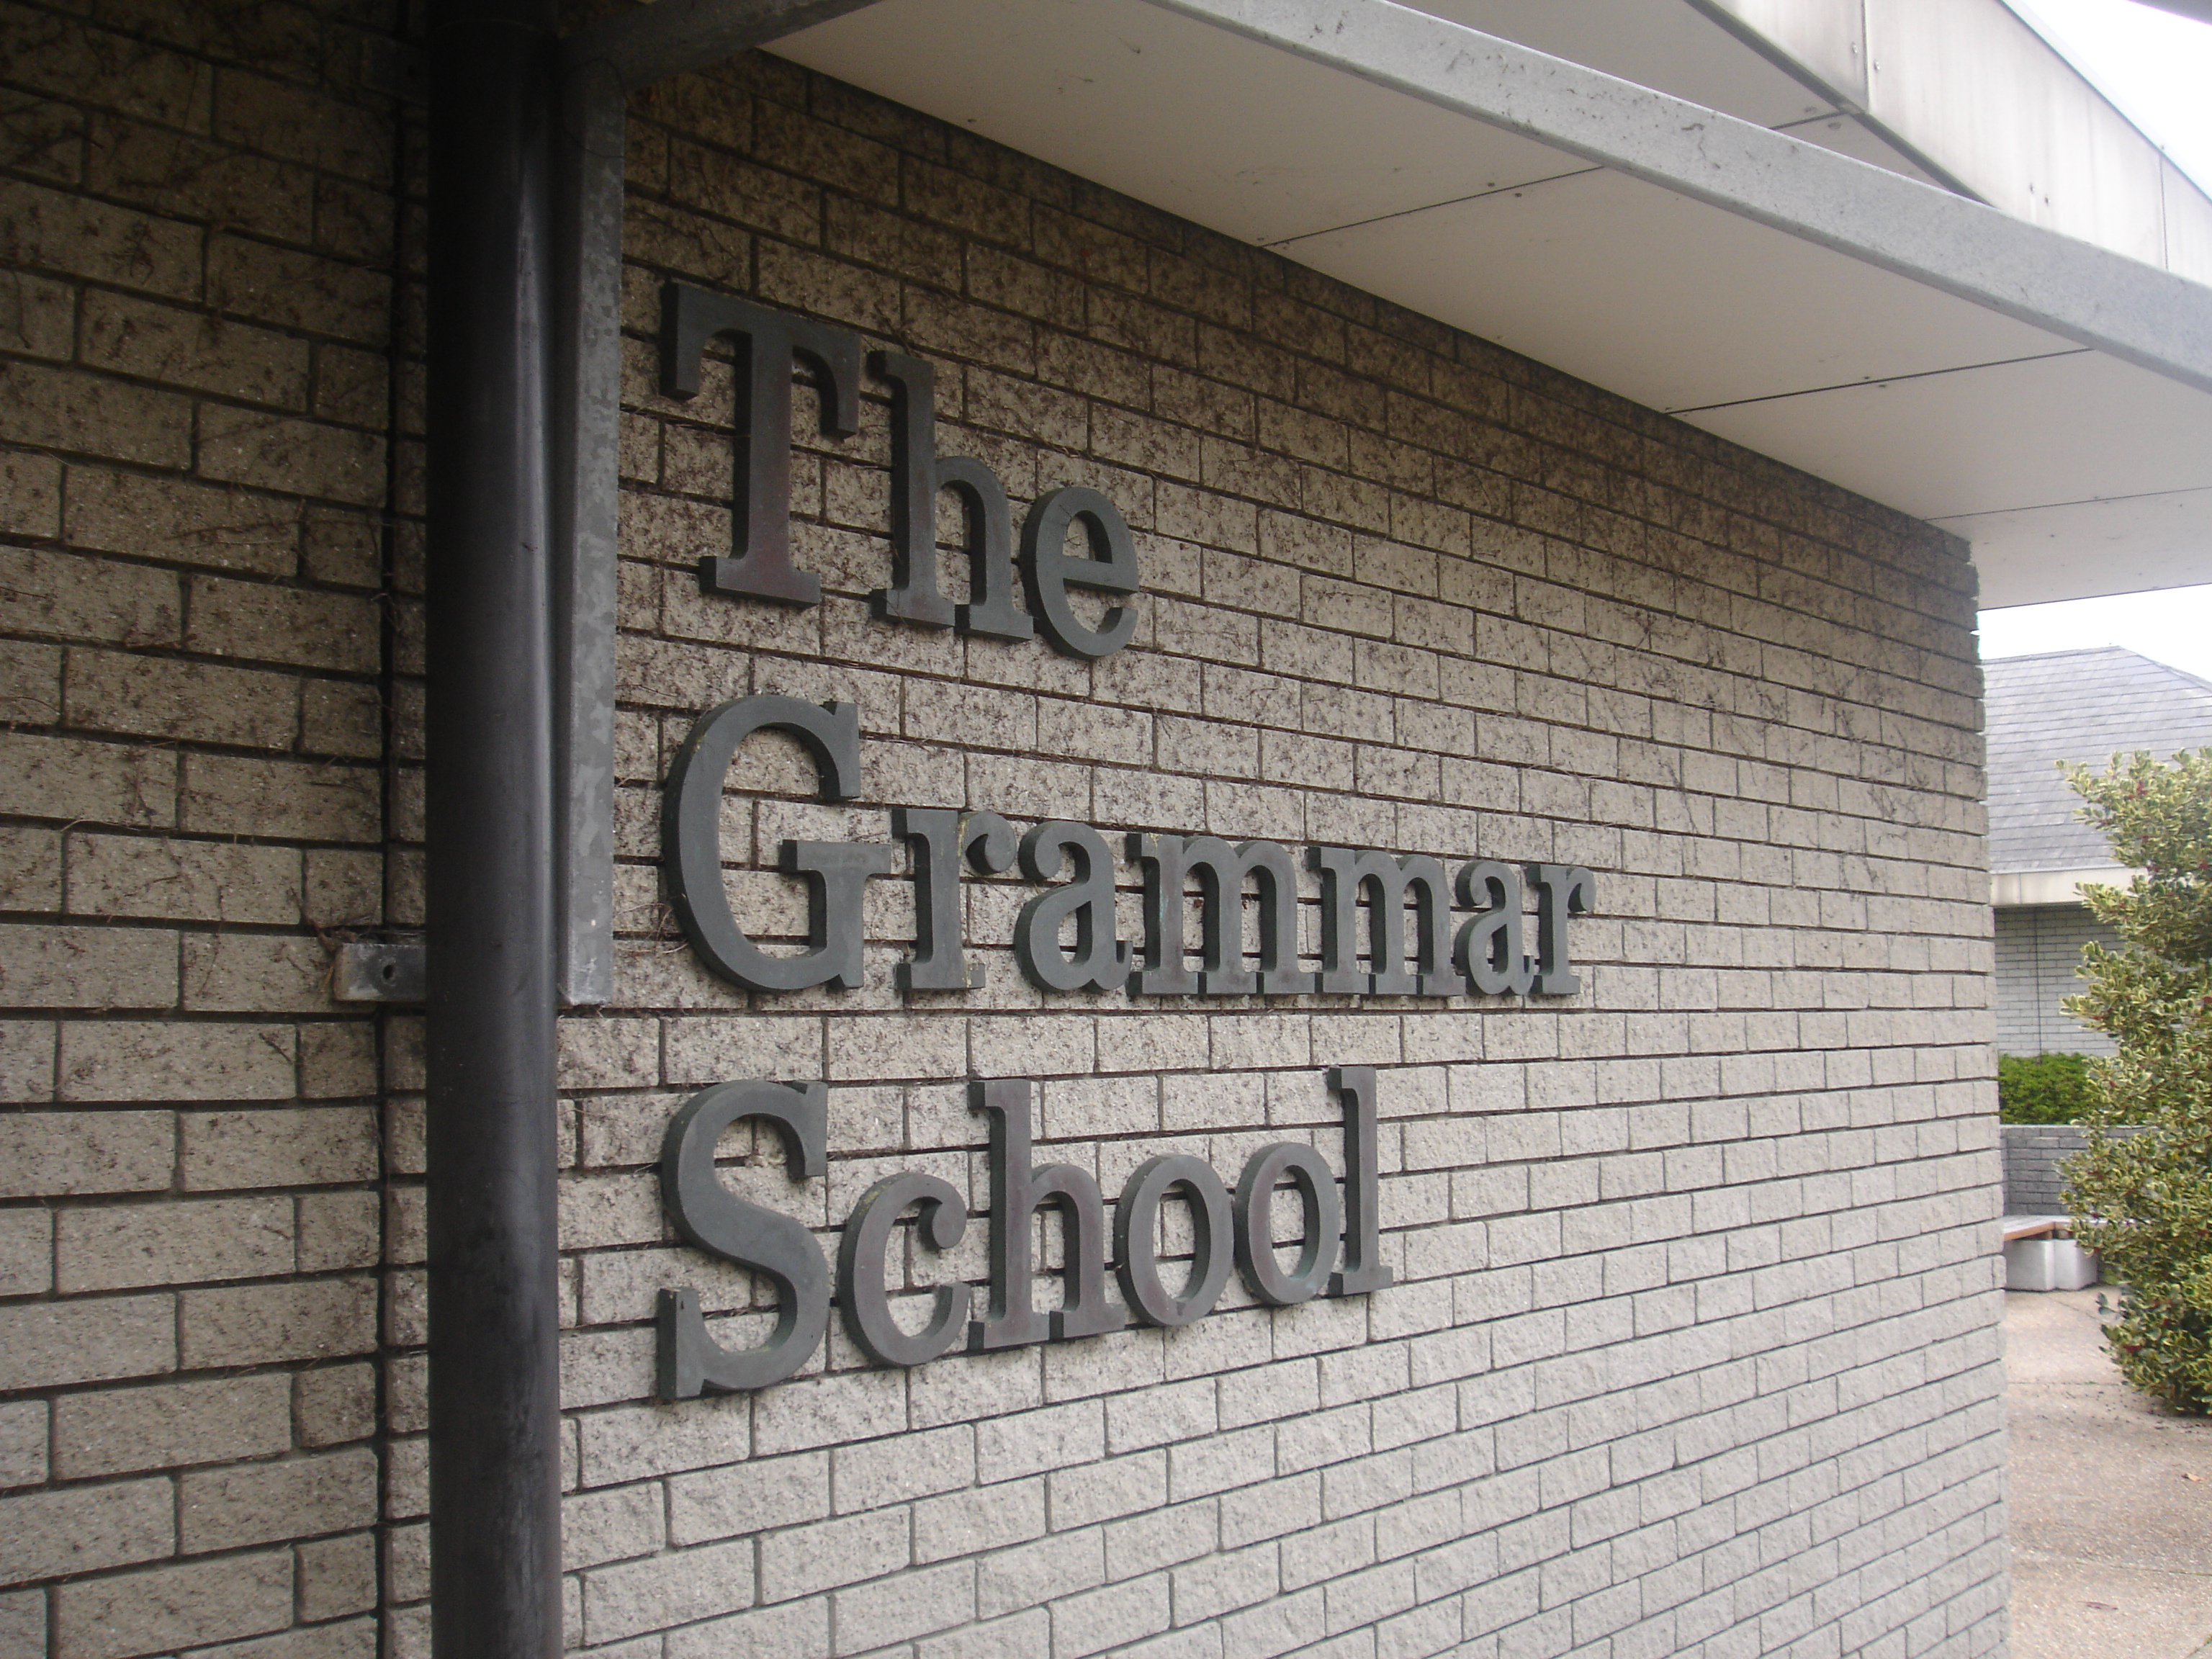 Grammar Schools or Further Education?